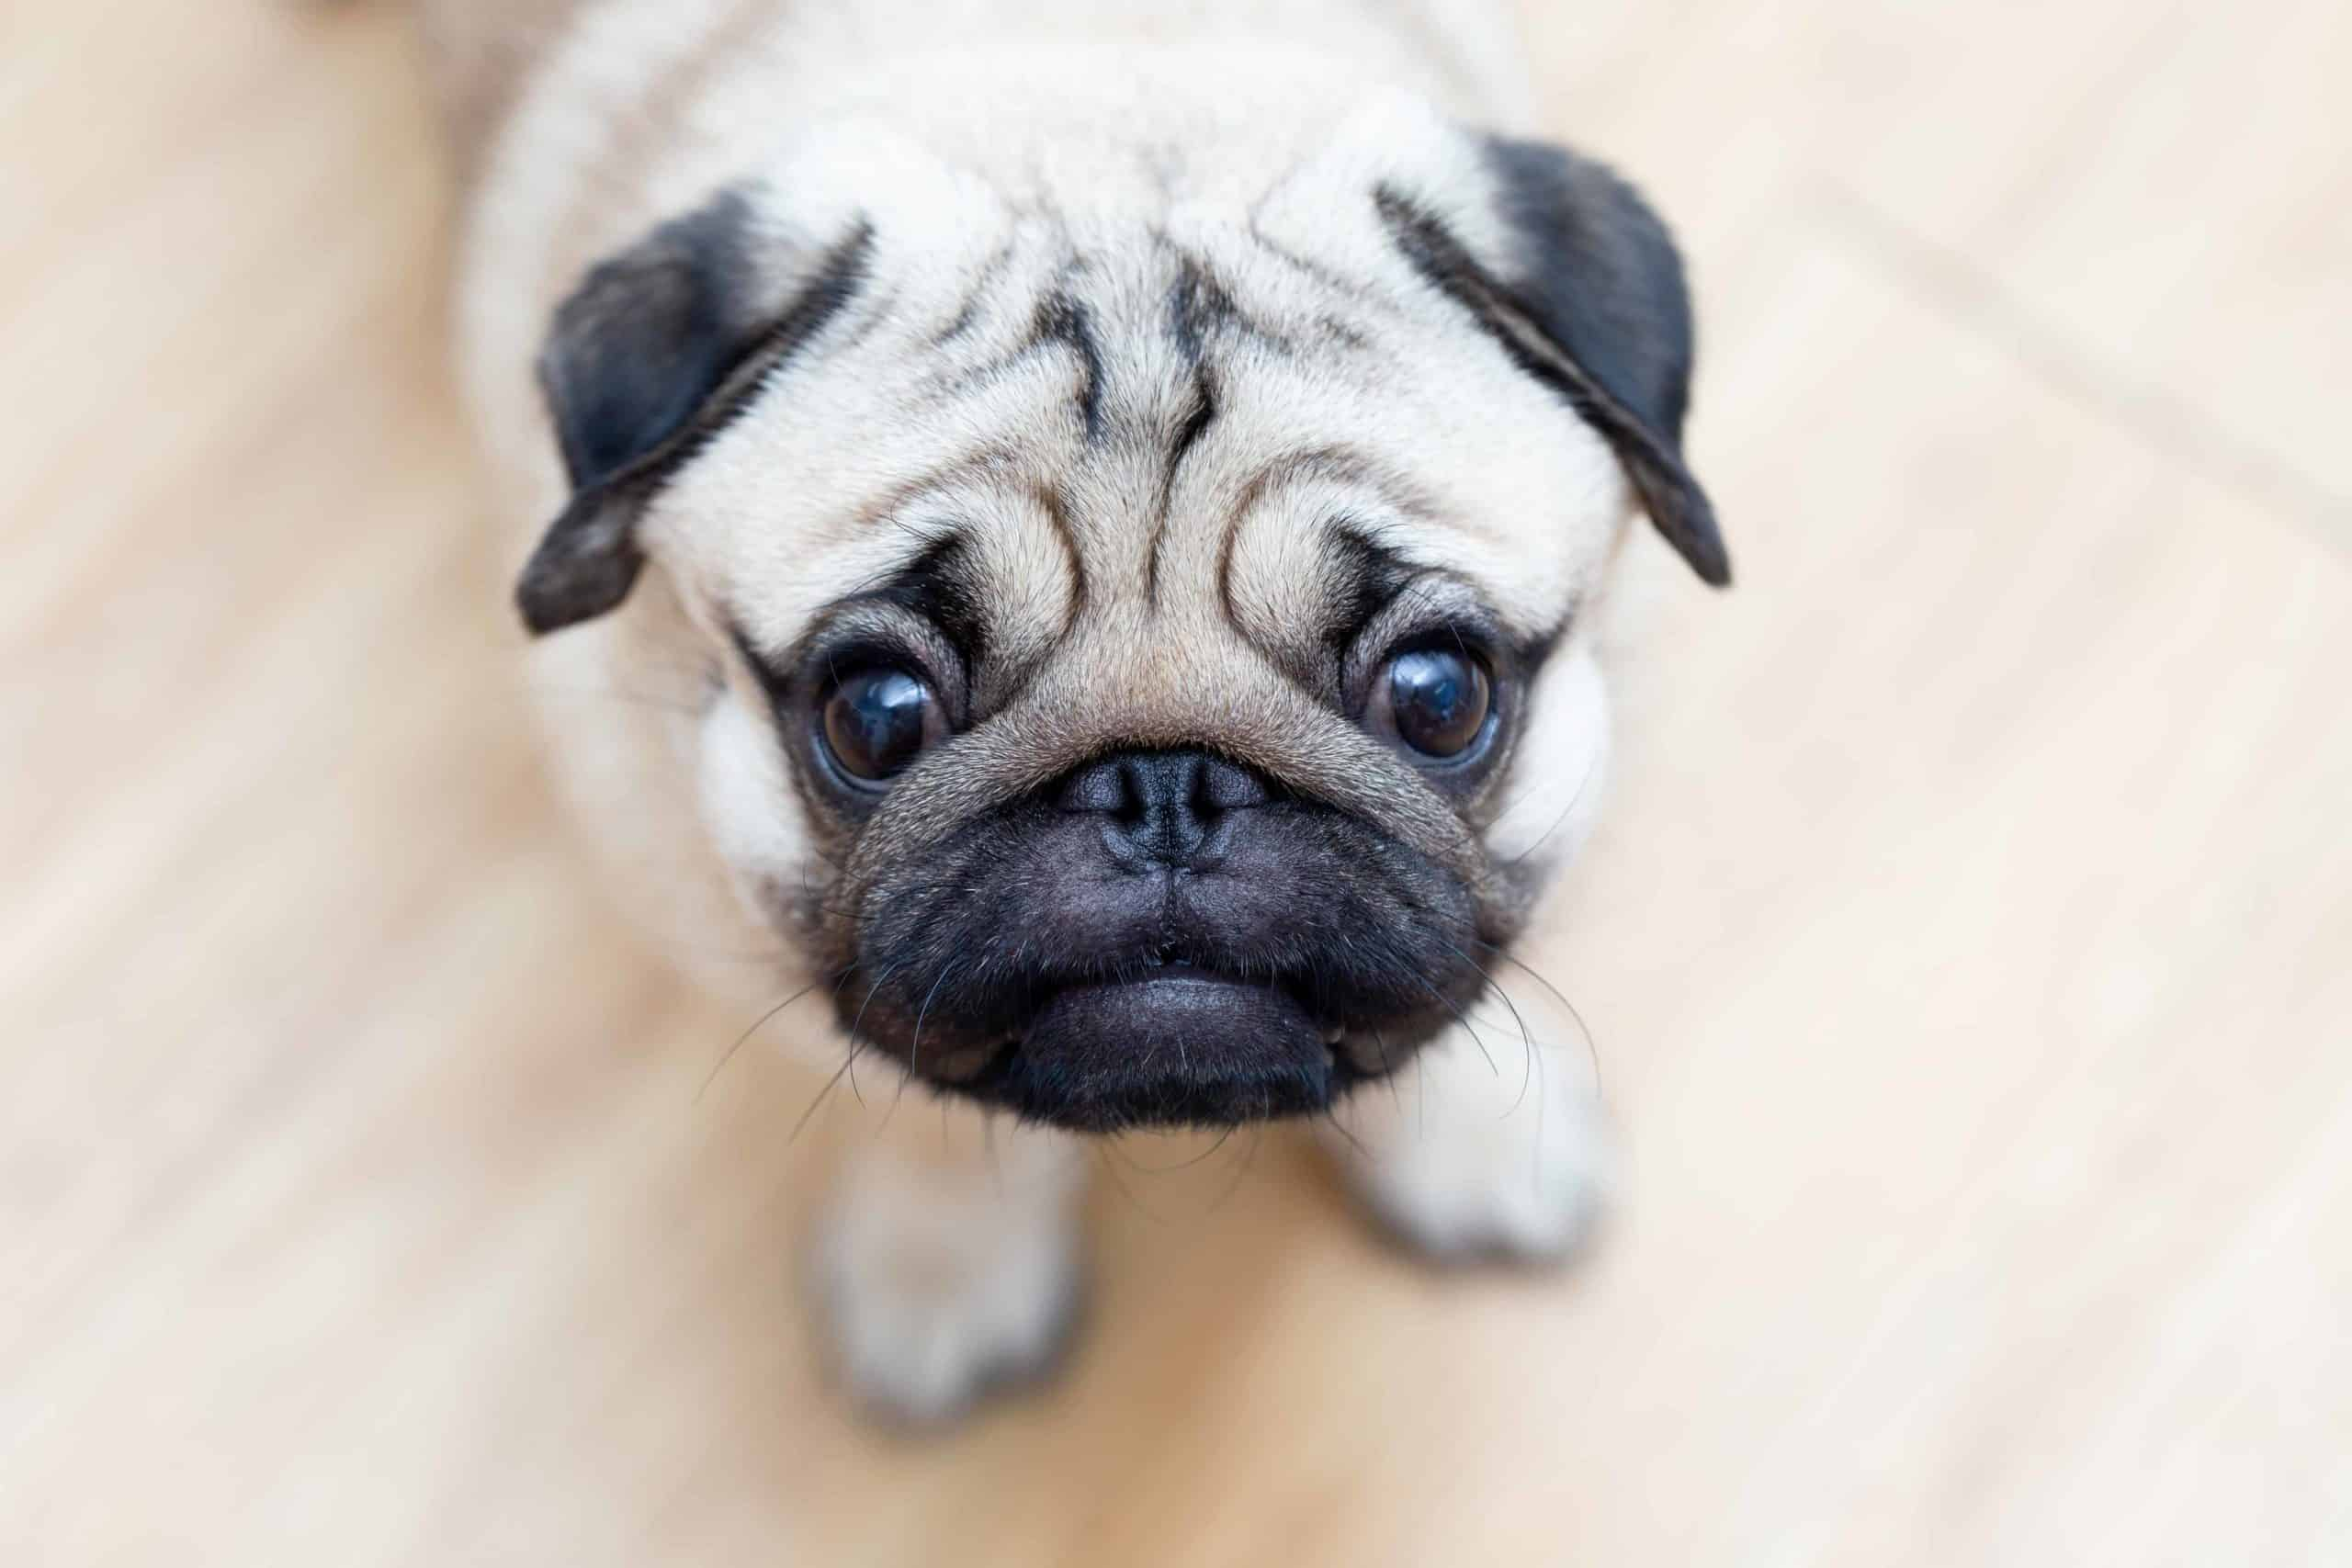 Worried pug. Watch for signs of a stressed dog including behavior changes and body language like shaking or keeping its tail tucked between its legs.